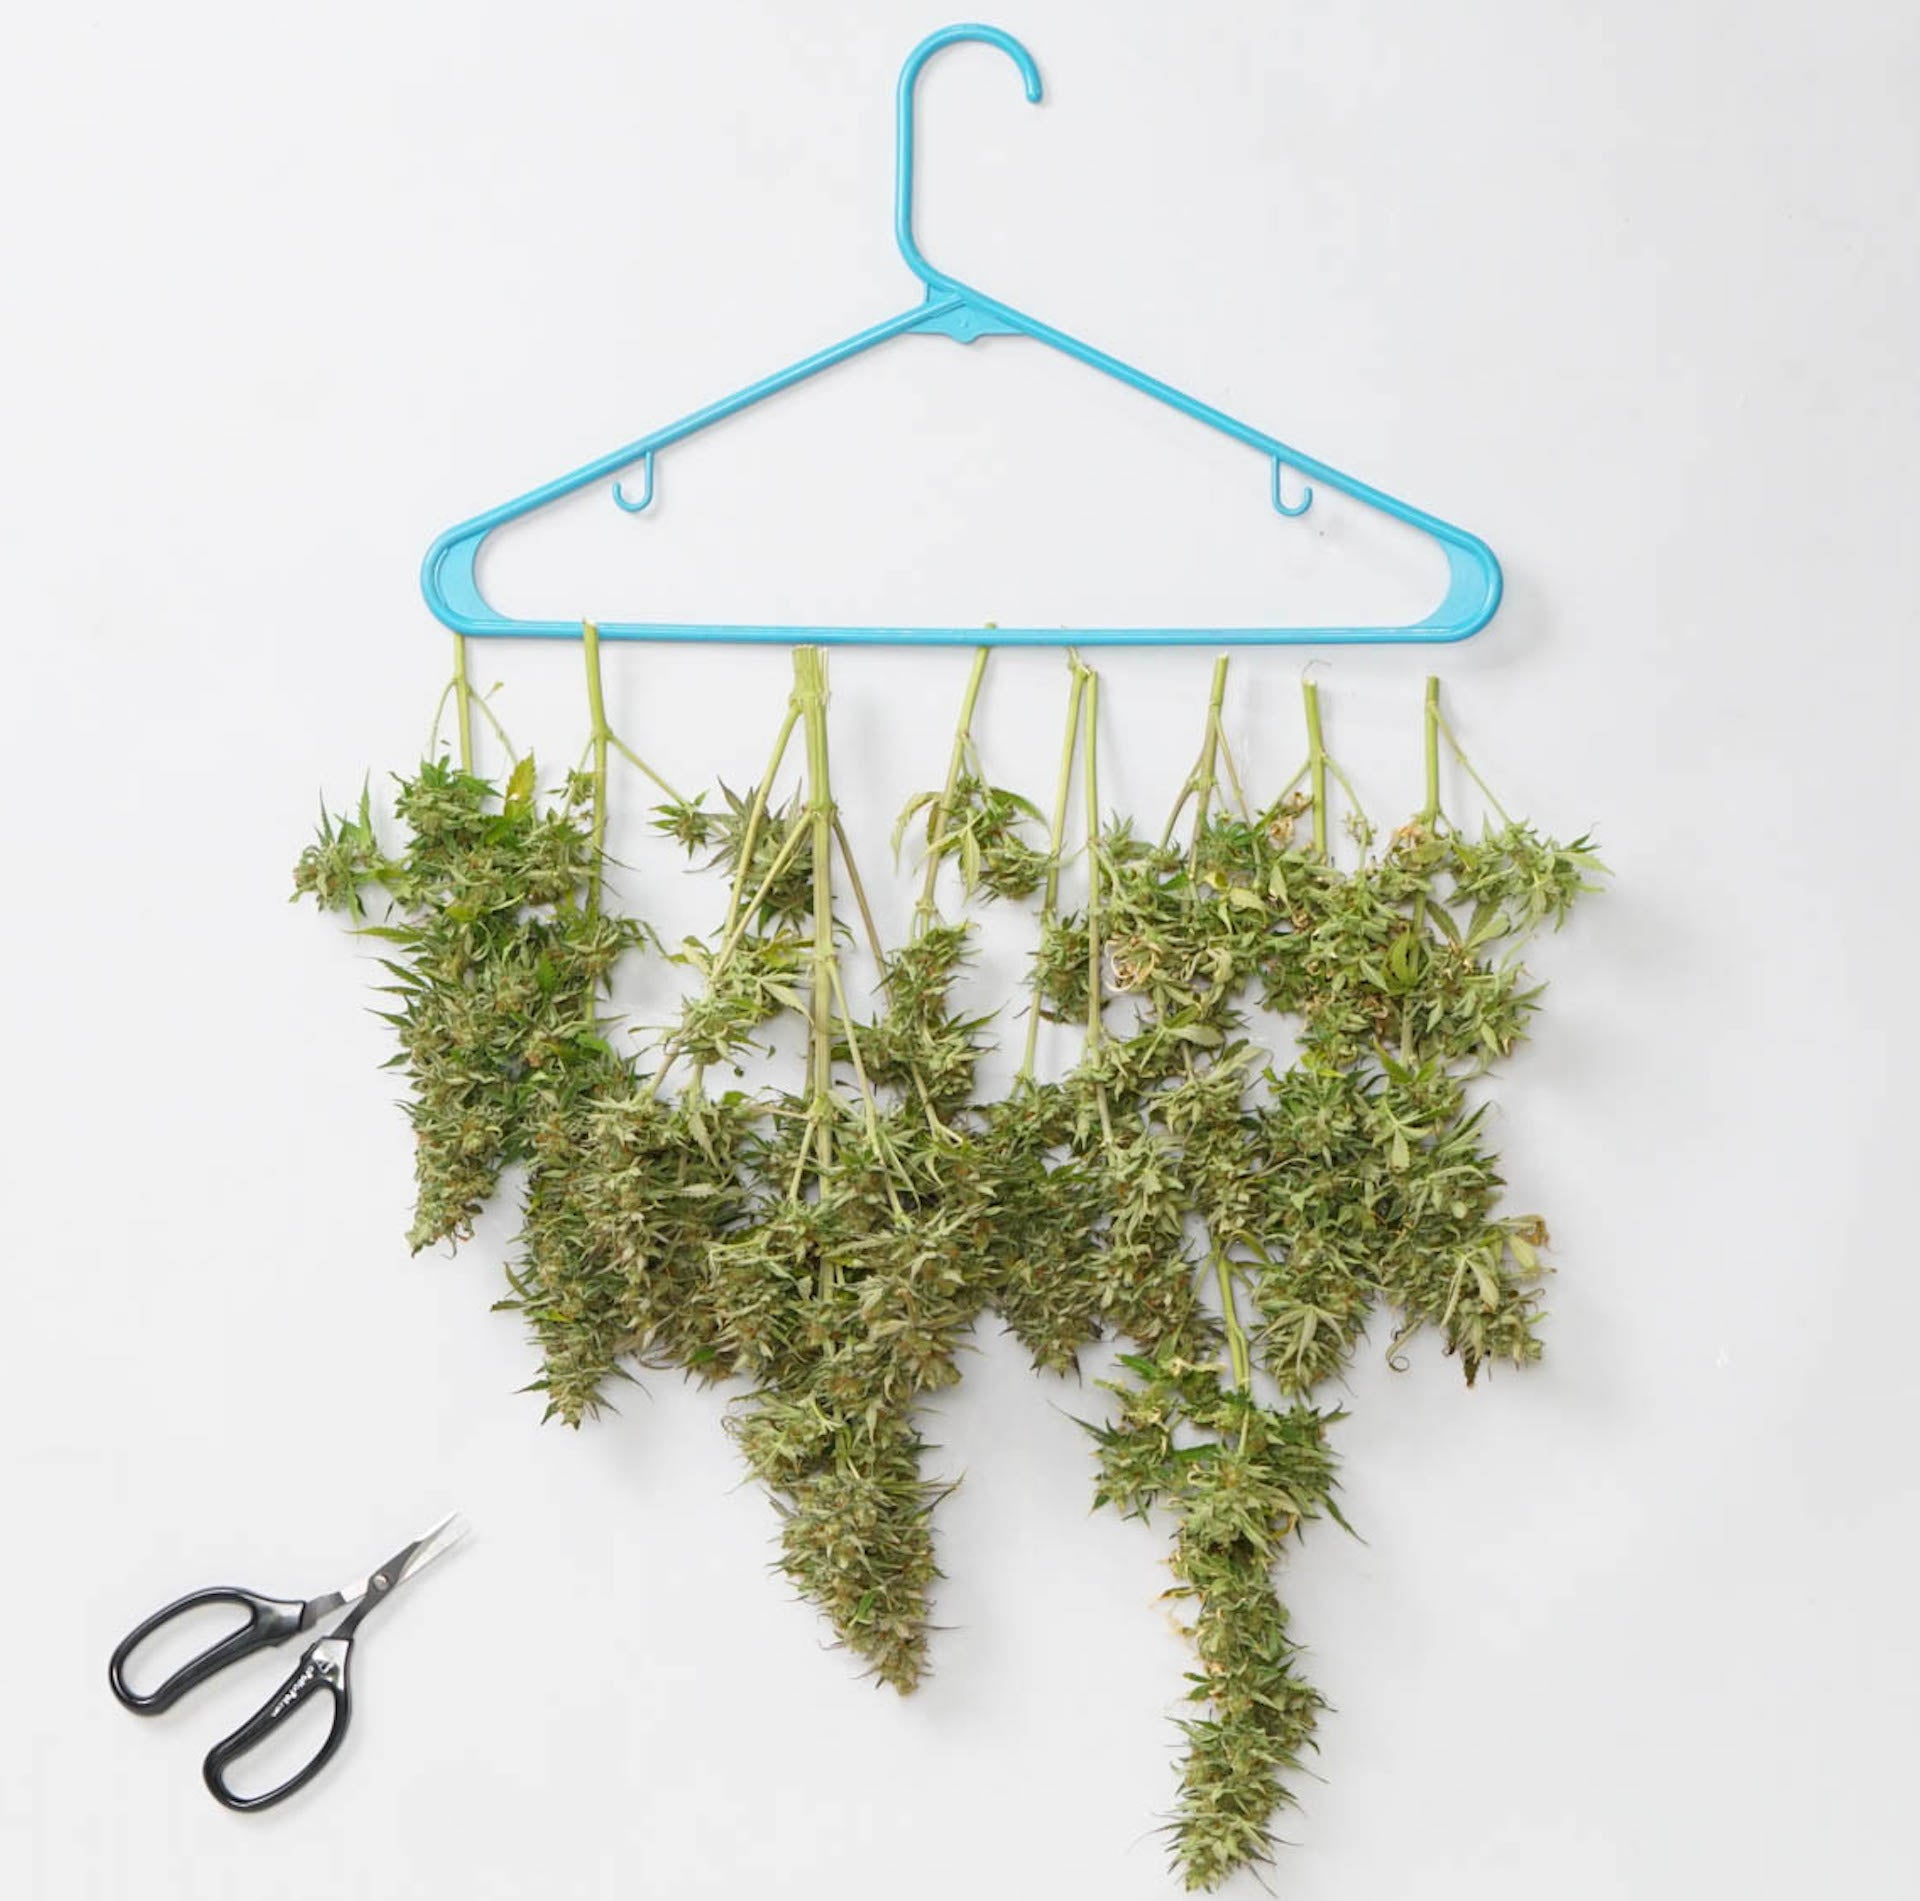 freshly harvested weed hanging on hanger with trimming scissors